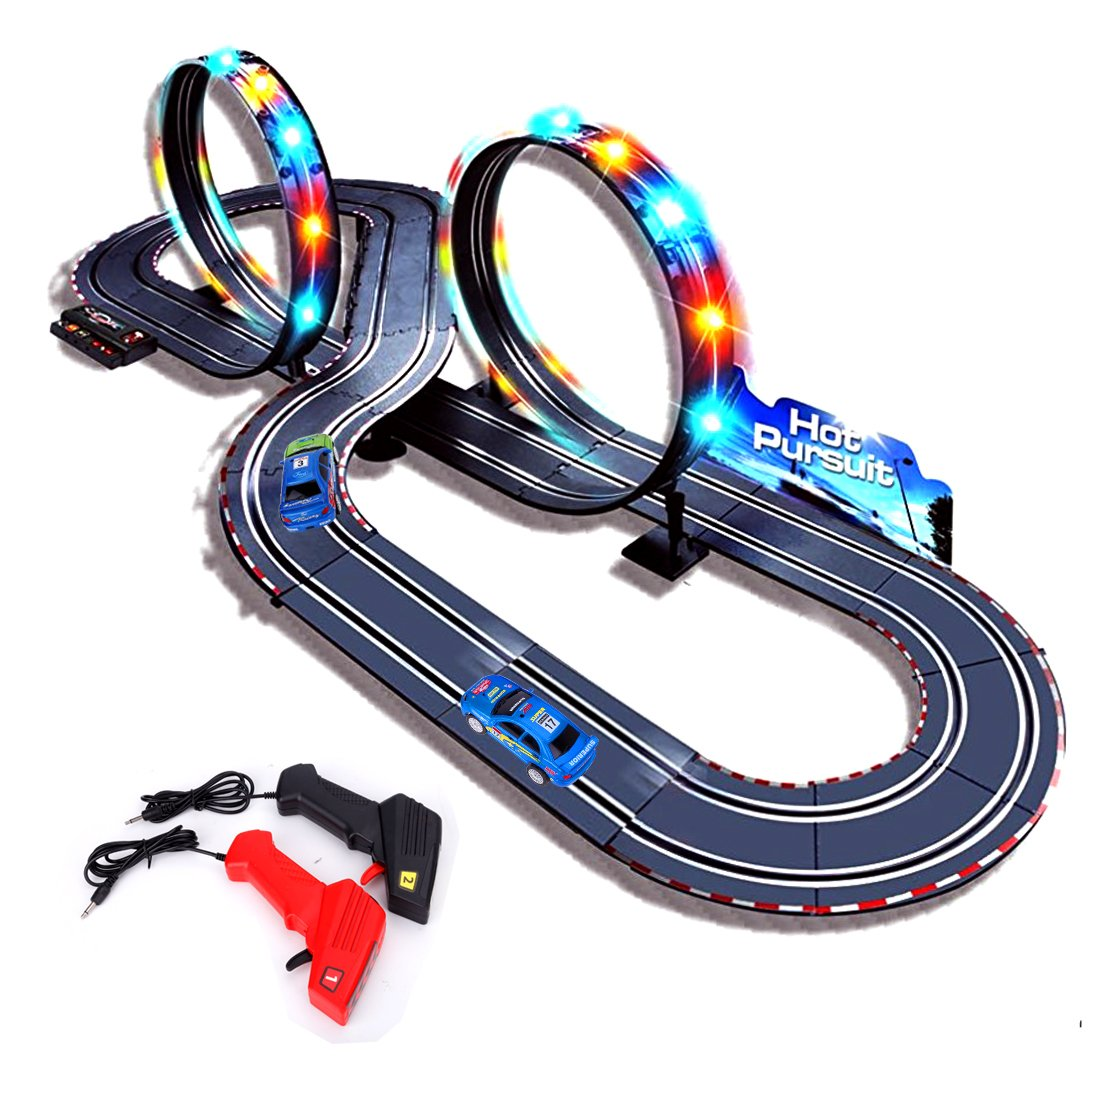 starrybay 143 scale electric rc slot car racing track sets dual speed mode race